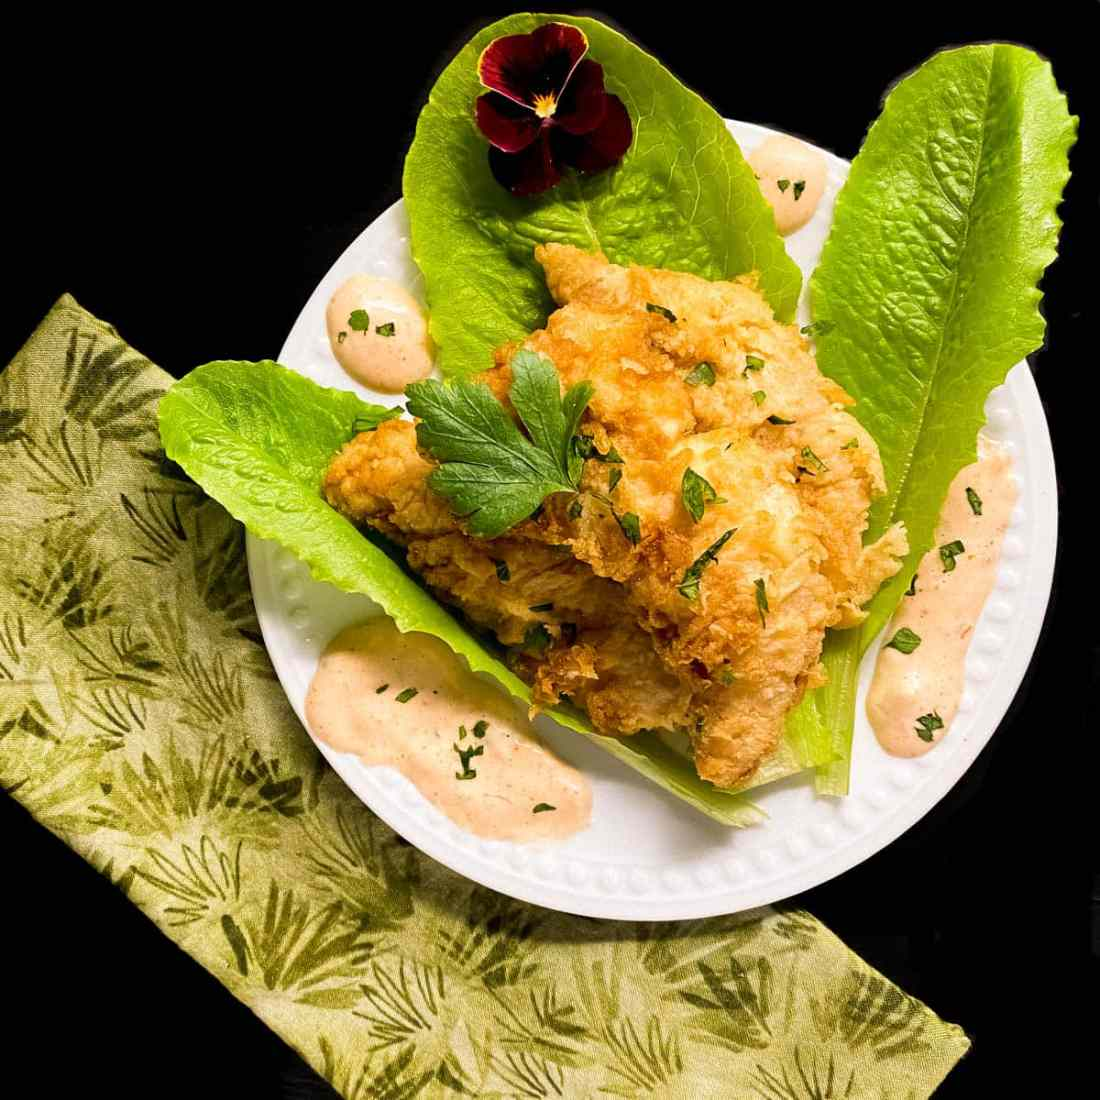 Grain & Gluten Free Fried Chicken Tenders with Remoulade Sauce on a white plate against a black background.